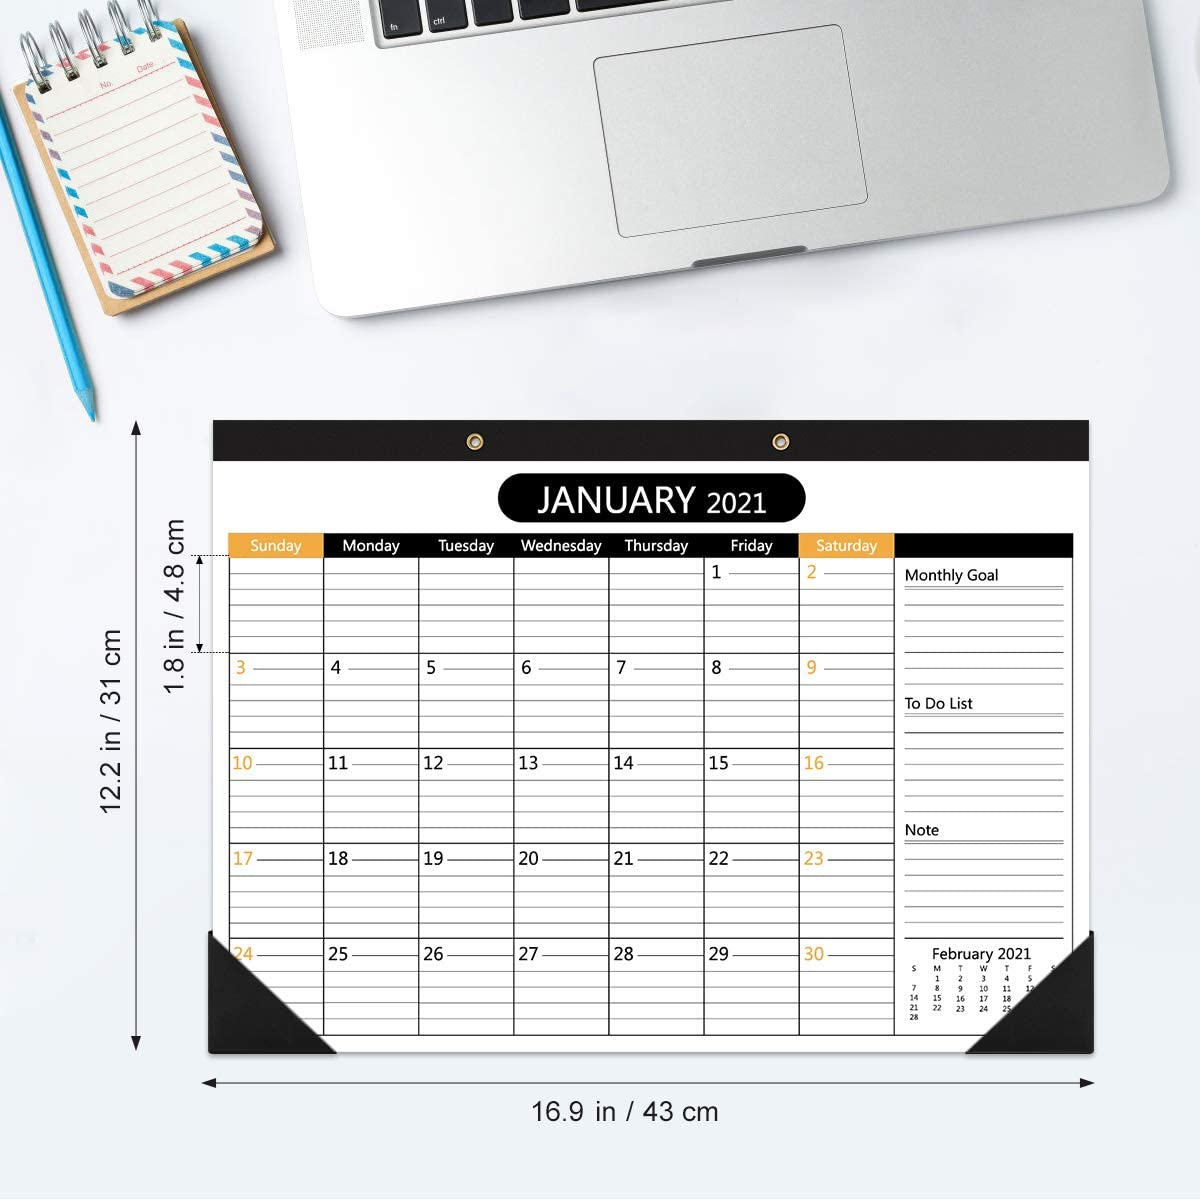 2021-2022 Wall Calendar, Large Monthly Desk Calendar with To Do Planning Stickers Ruled Blocks